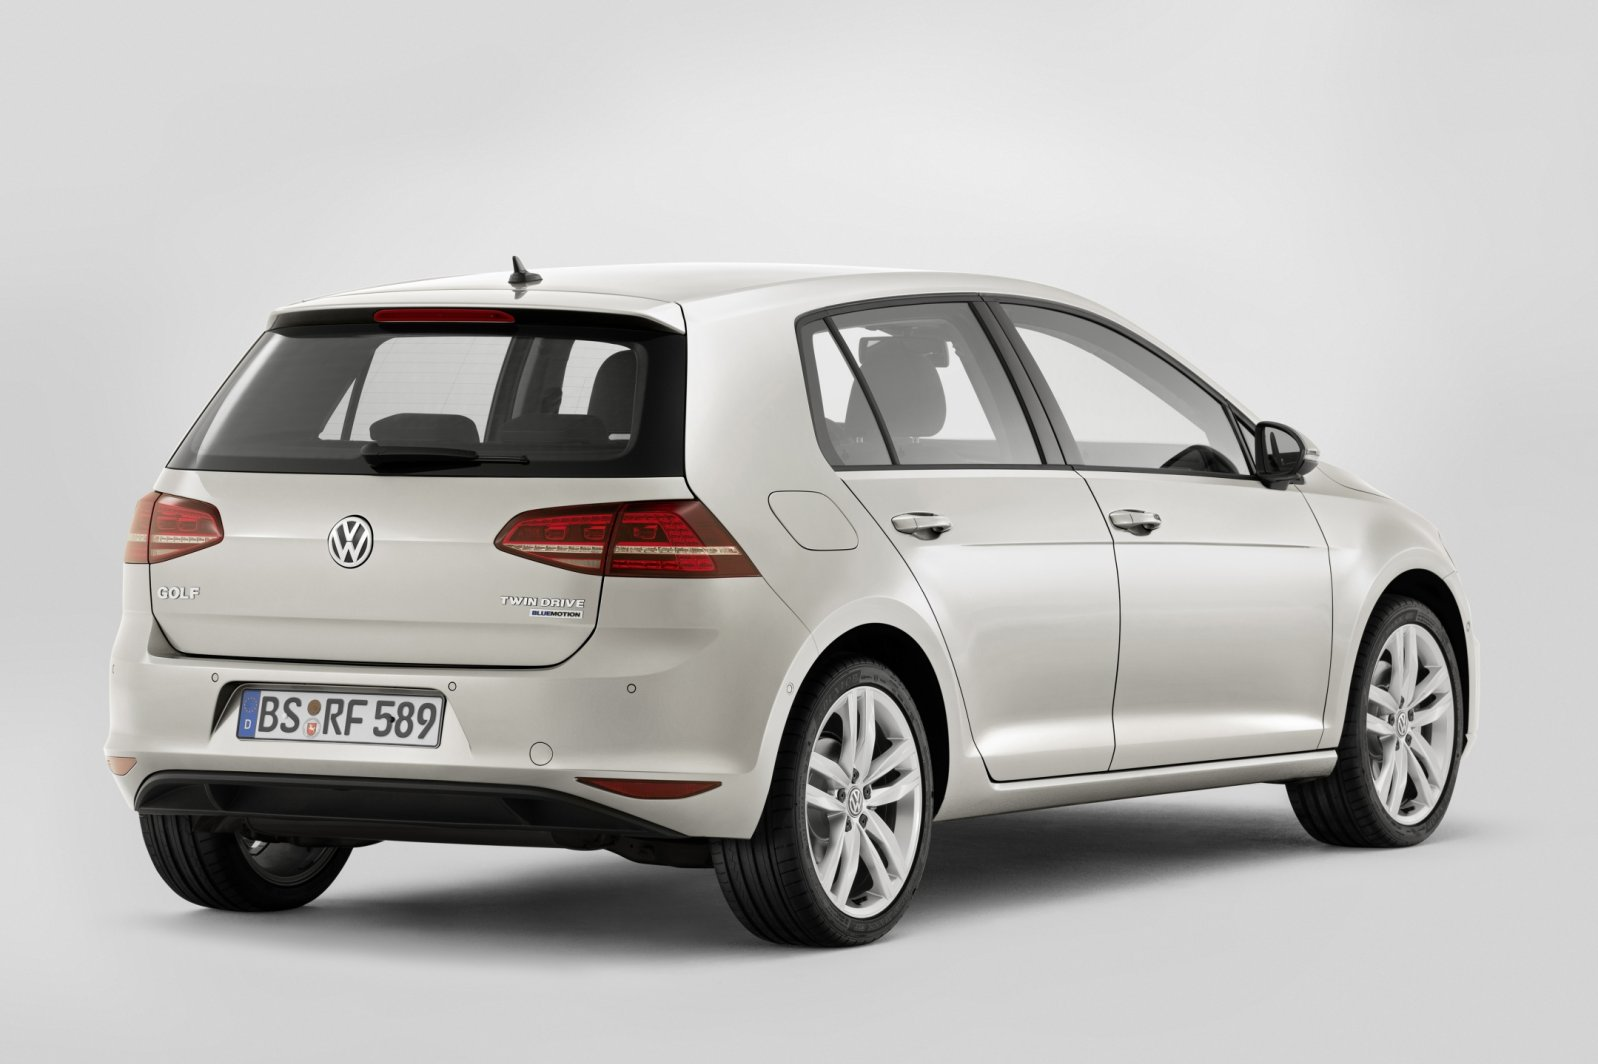 volkswagen golf plug in hybride met 7 bijtelling heet gte drivessential. Black Bedroom Furniture Sets. Home Design Ideas